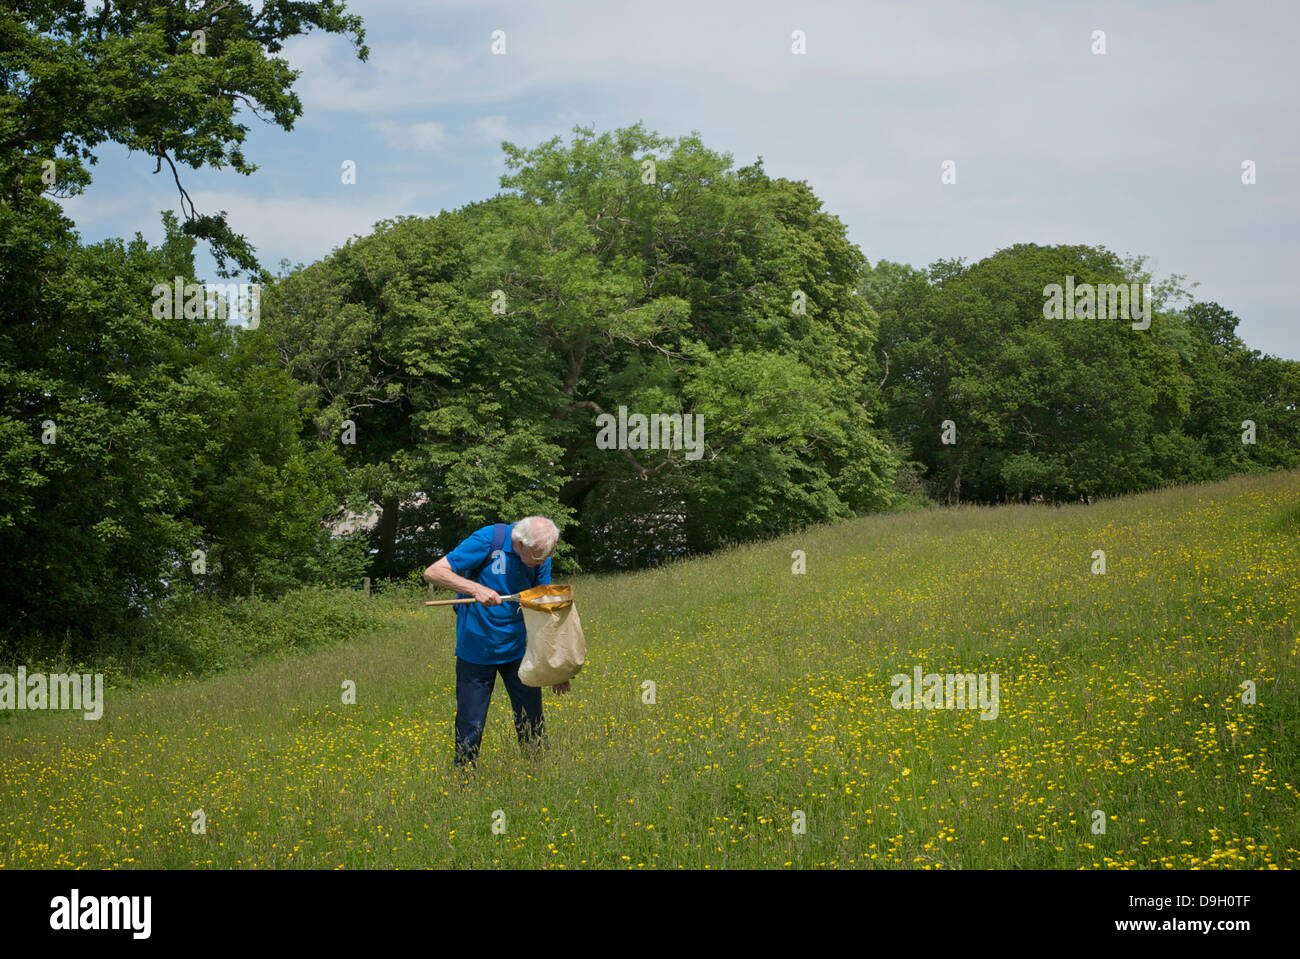 Senior man hunting bugs with a net, at Grubbins Wood, near Arnside, Cumbria, England UK - Stock Image